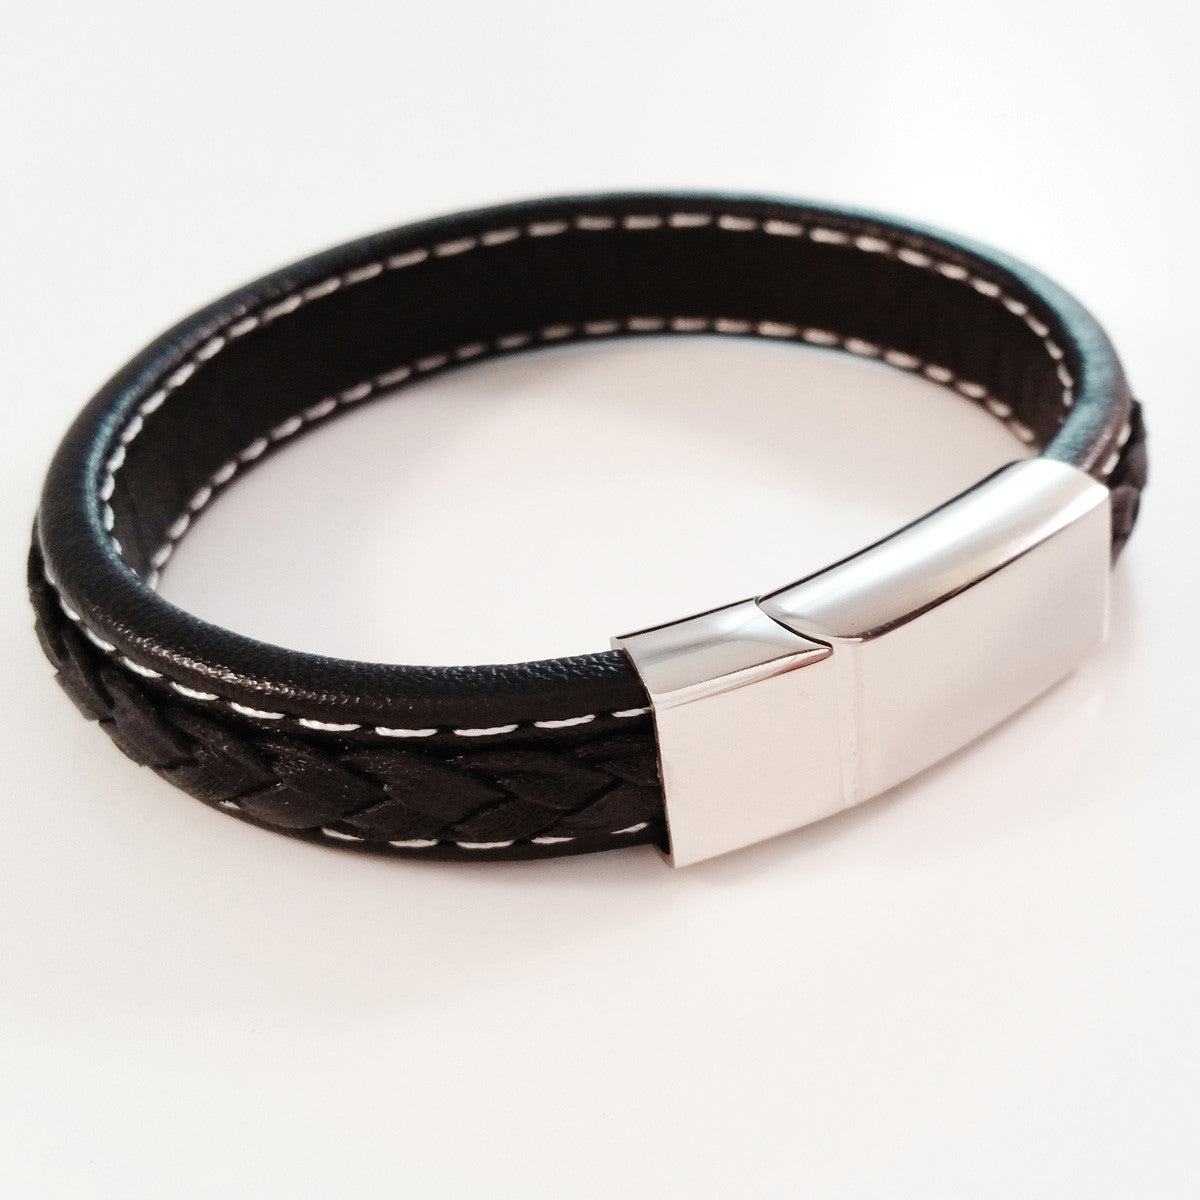 MEN'S BLACK COW HIDE LEATHER BRACELET WITH POLISHED STAINLESS STEEL CLASP